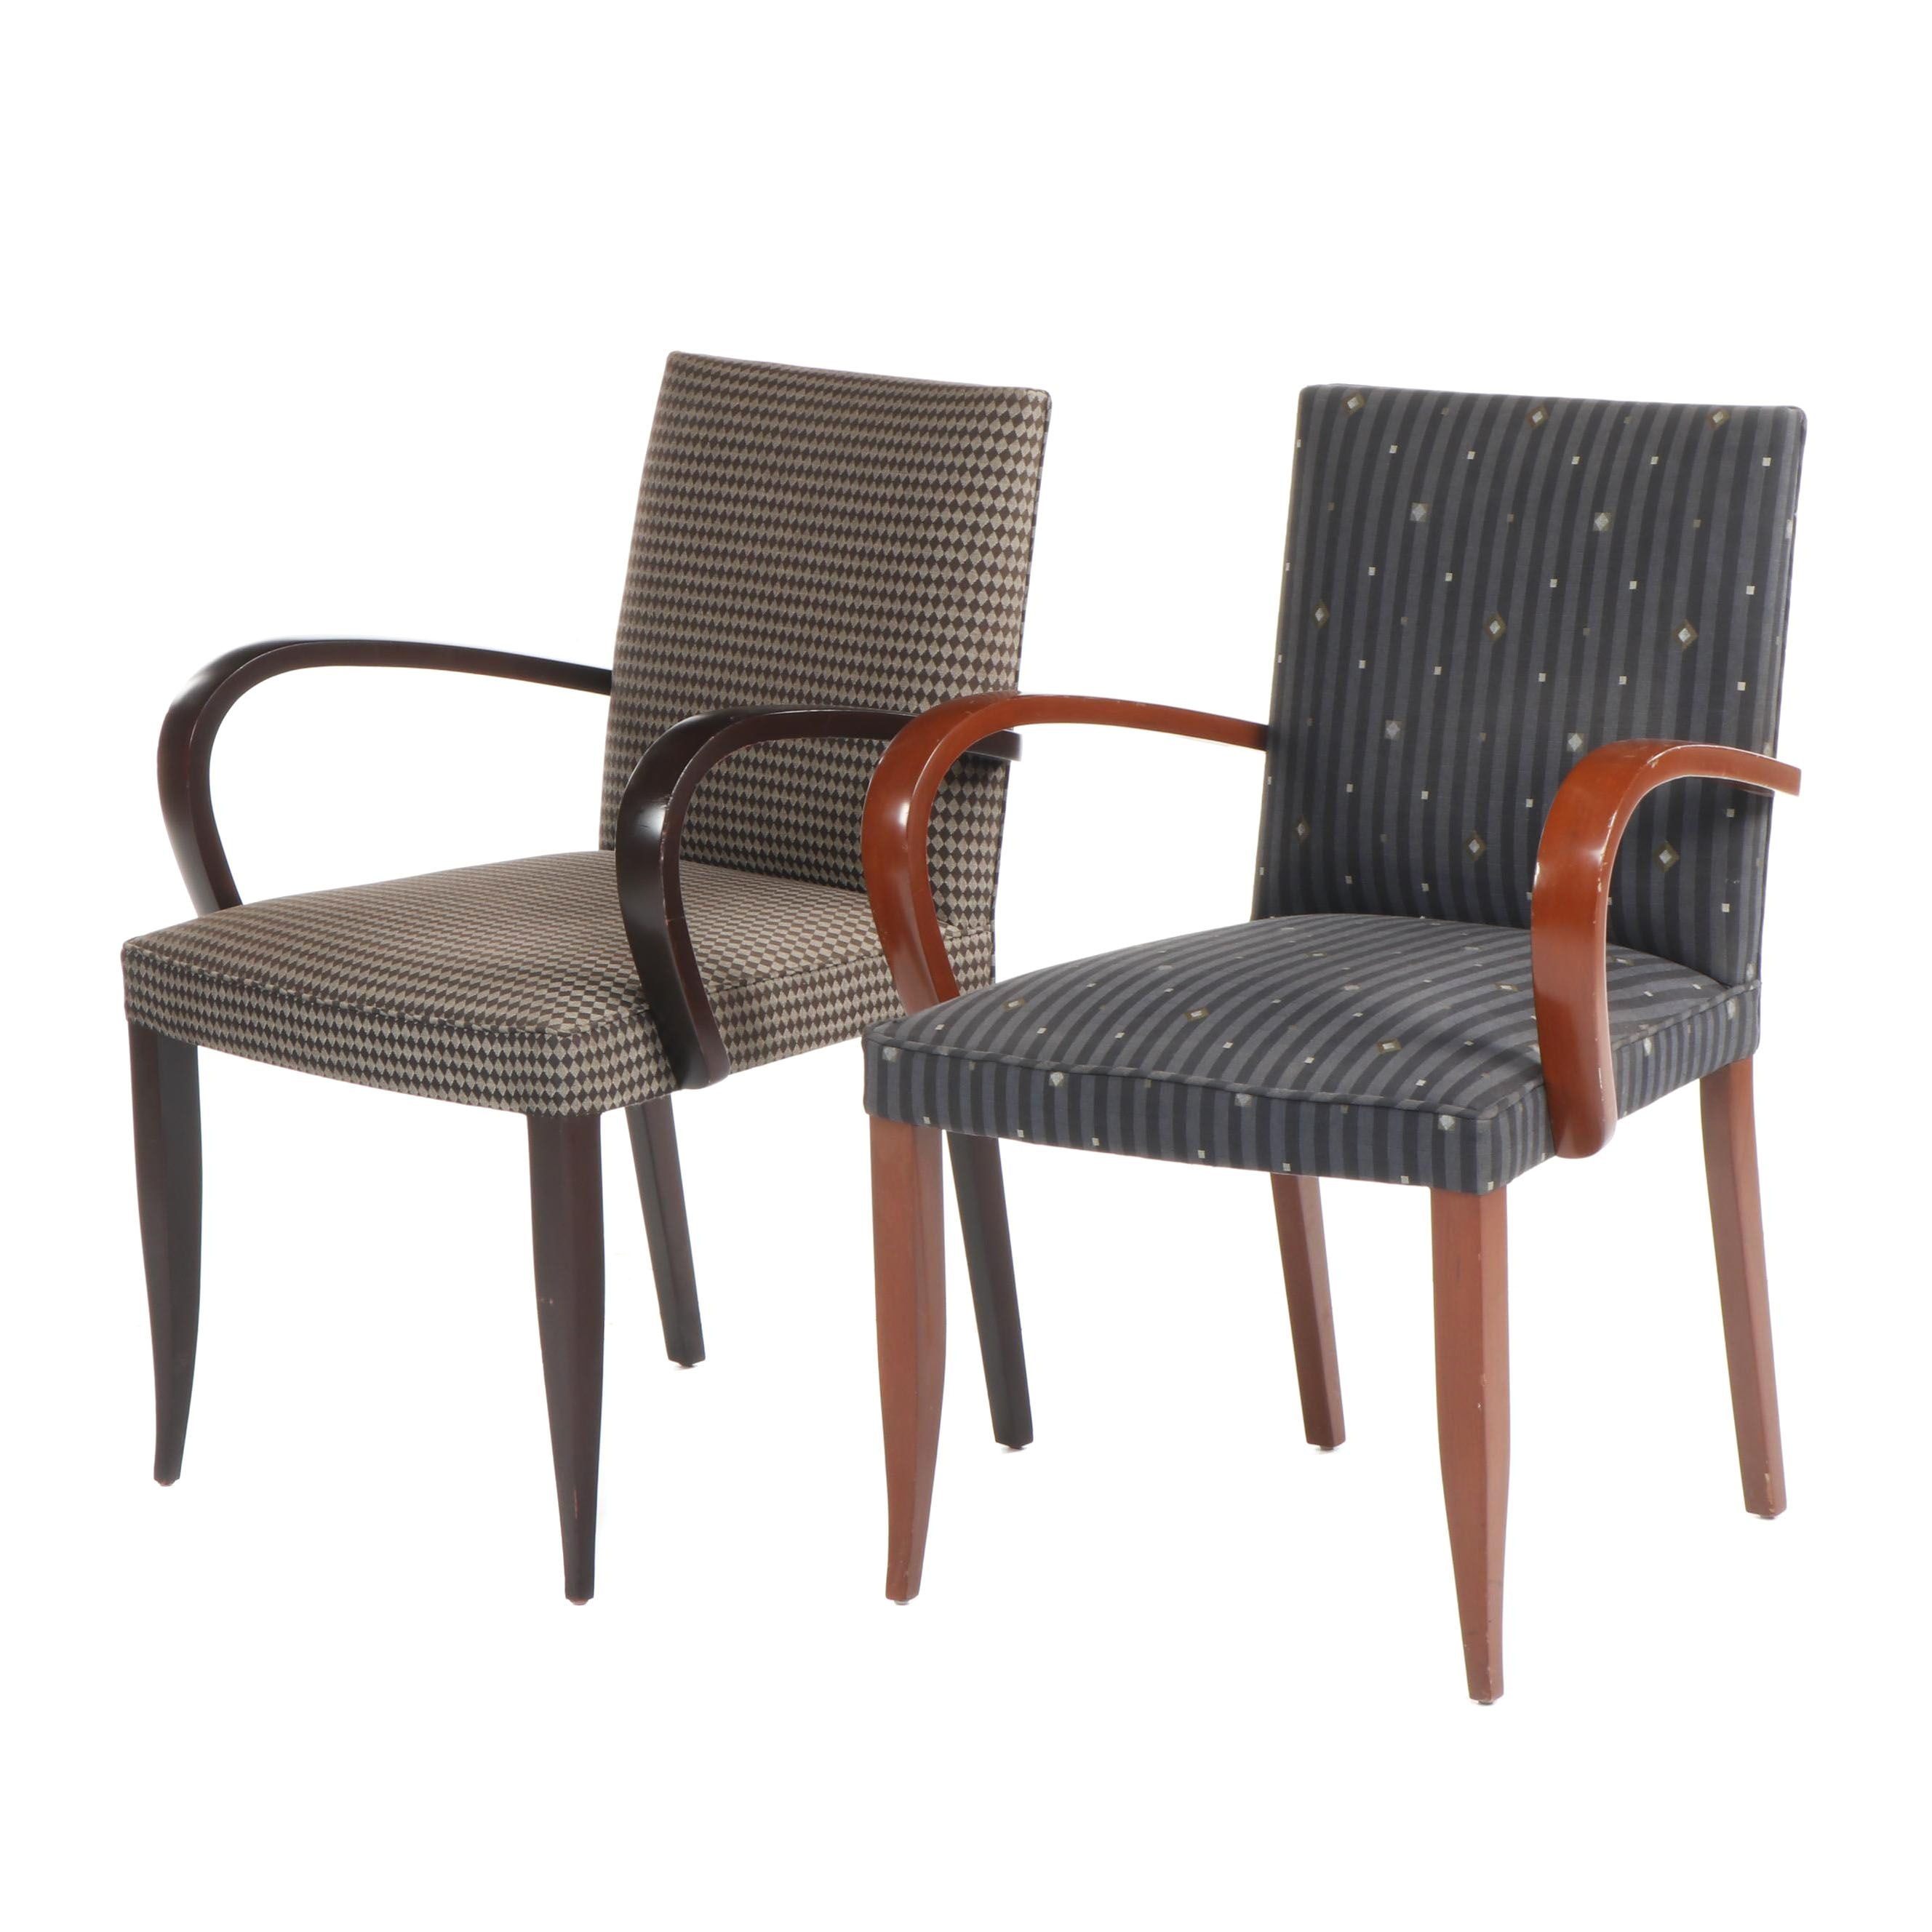 Modern Style Upholstered Armchairs with Wooden Frames